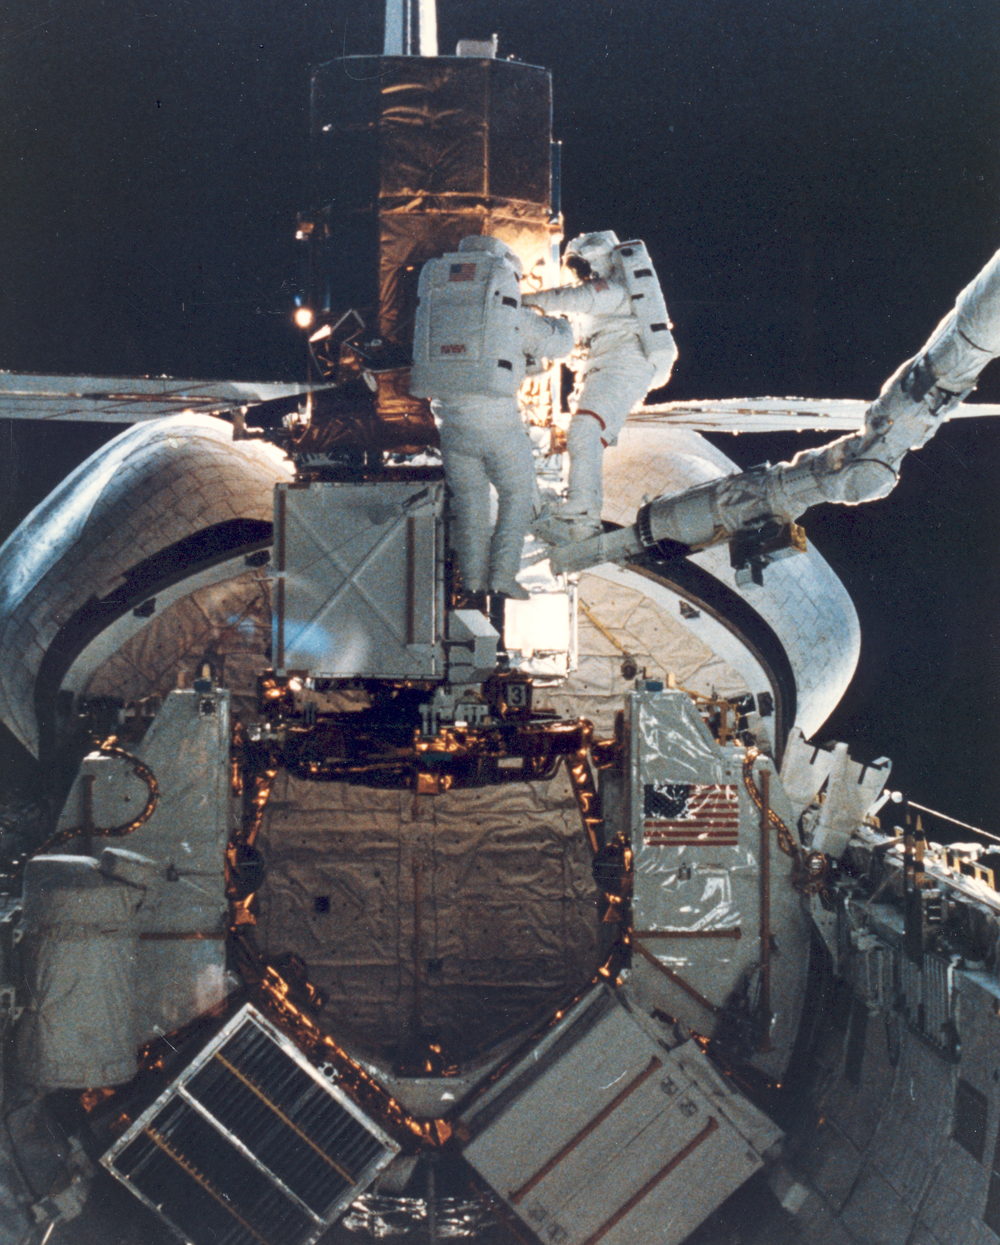 A Satellite Repair Shop: STS-41C (Challenger)